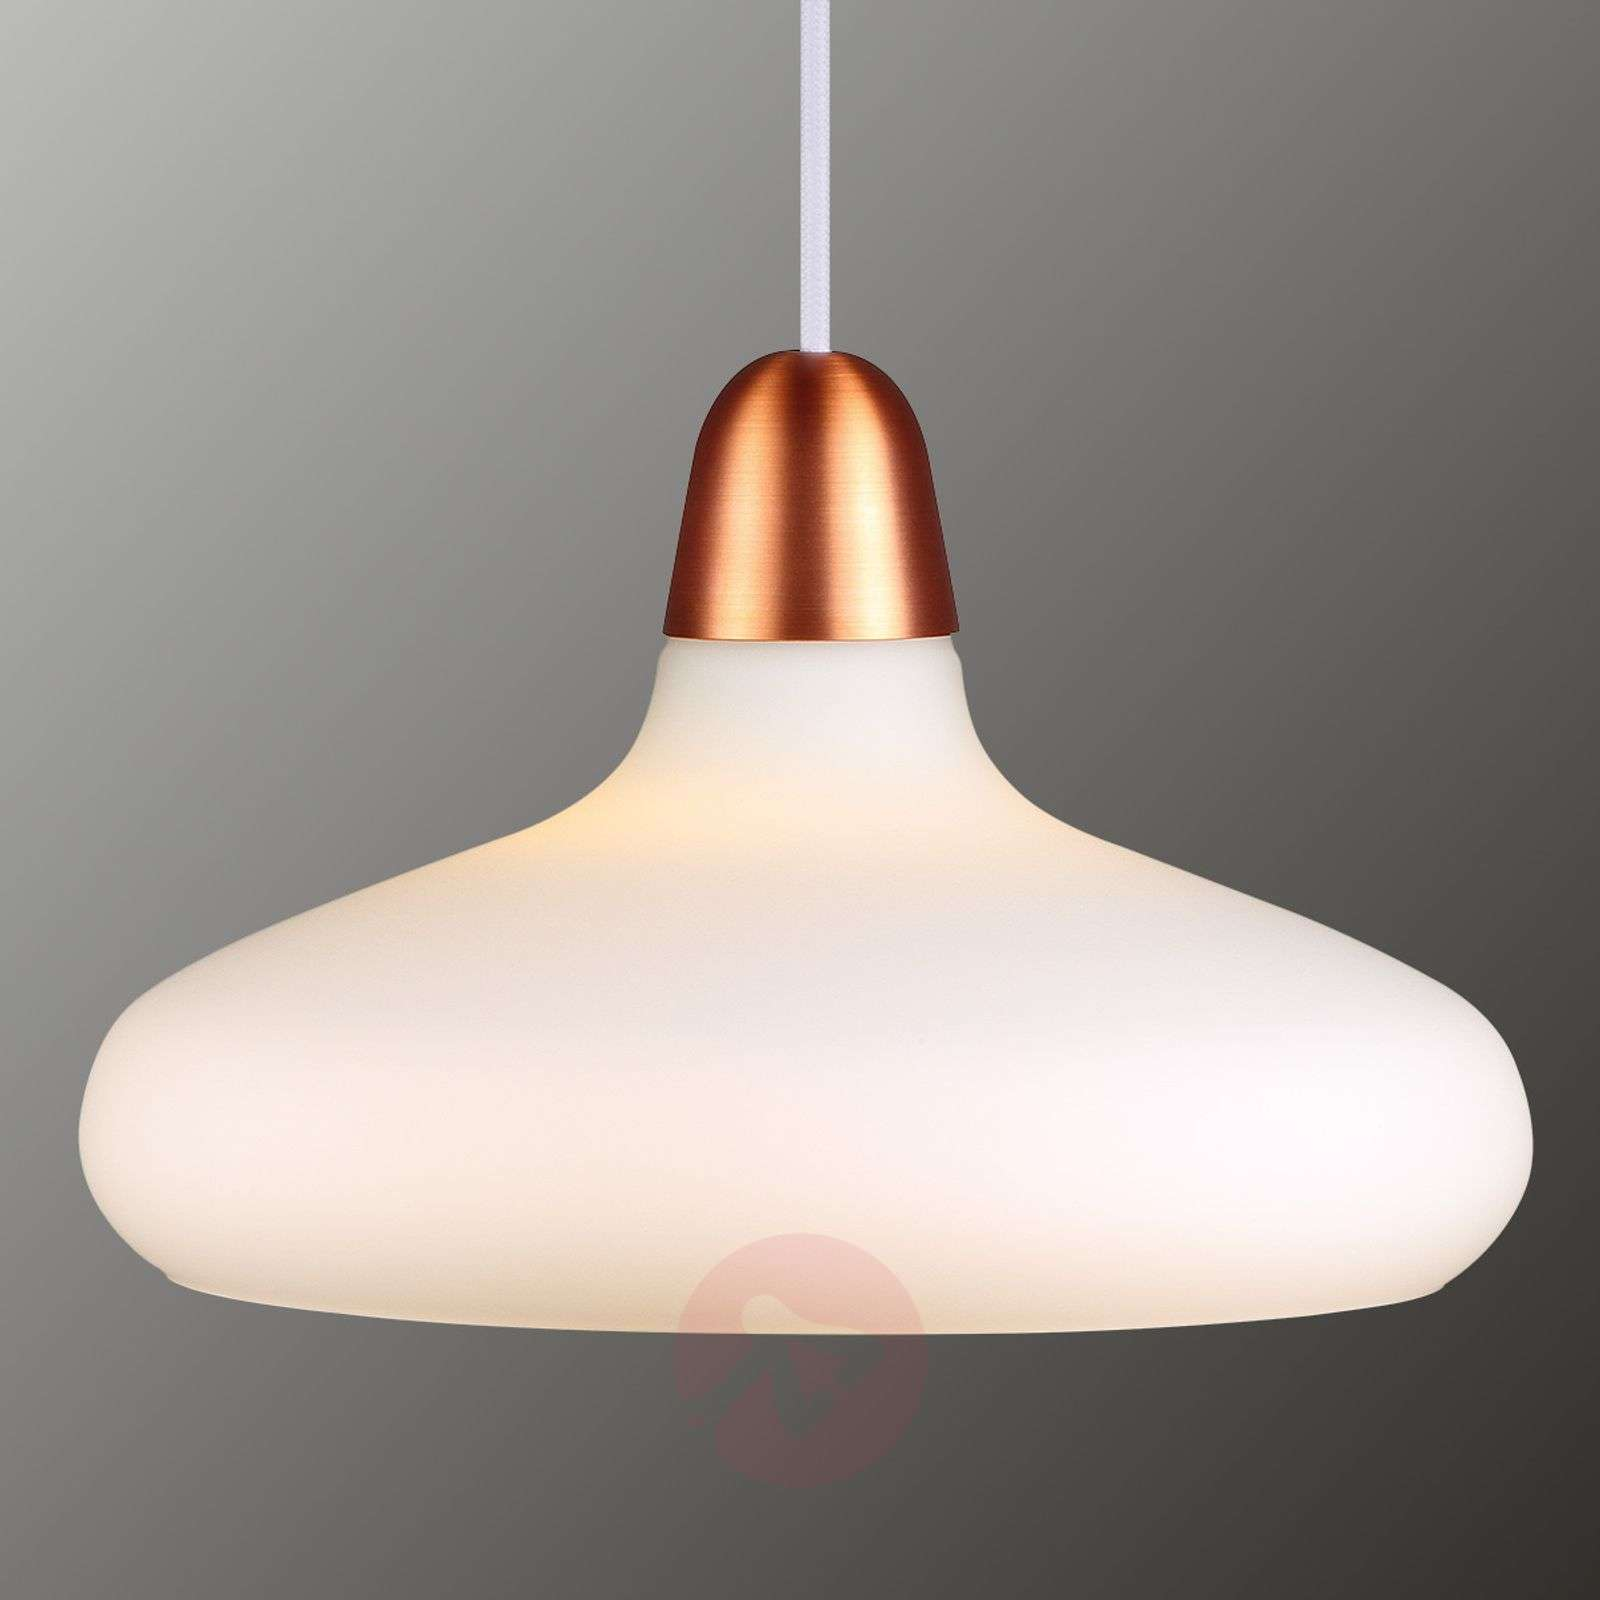 Glass pendant lamp Bloom, 29 cm-7005911-01